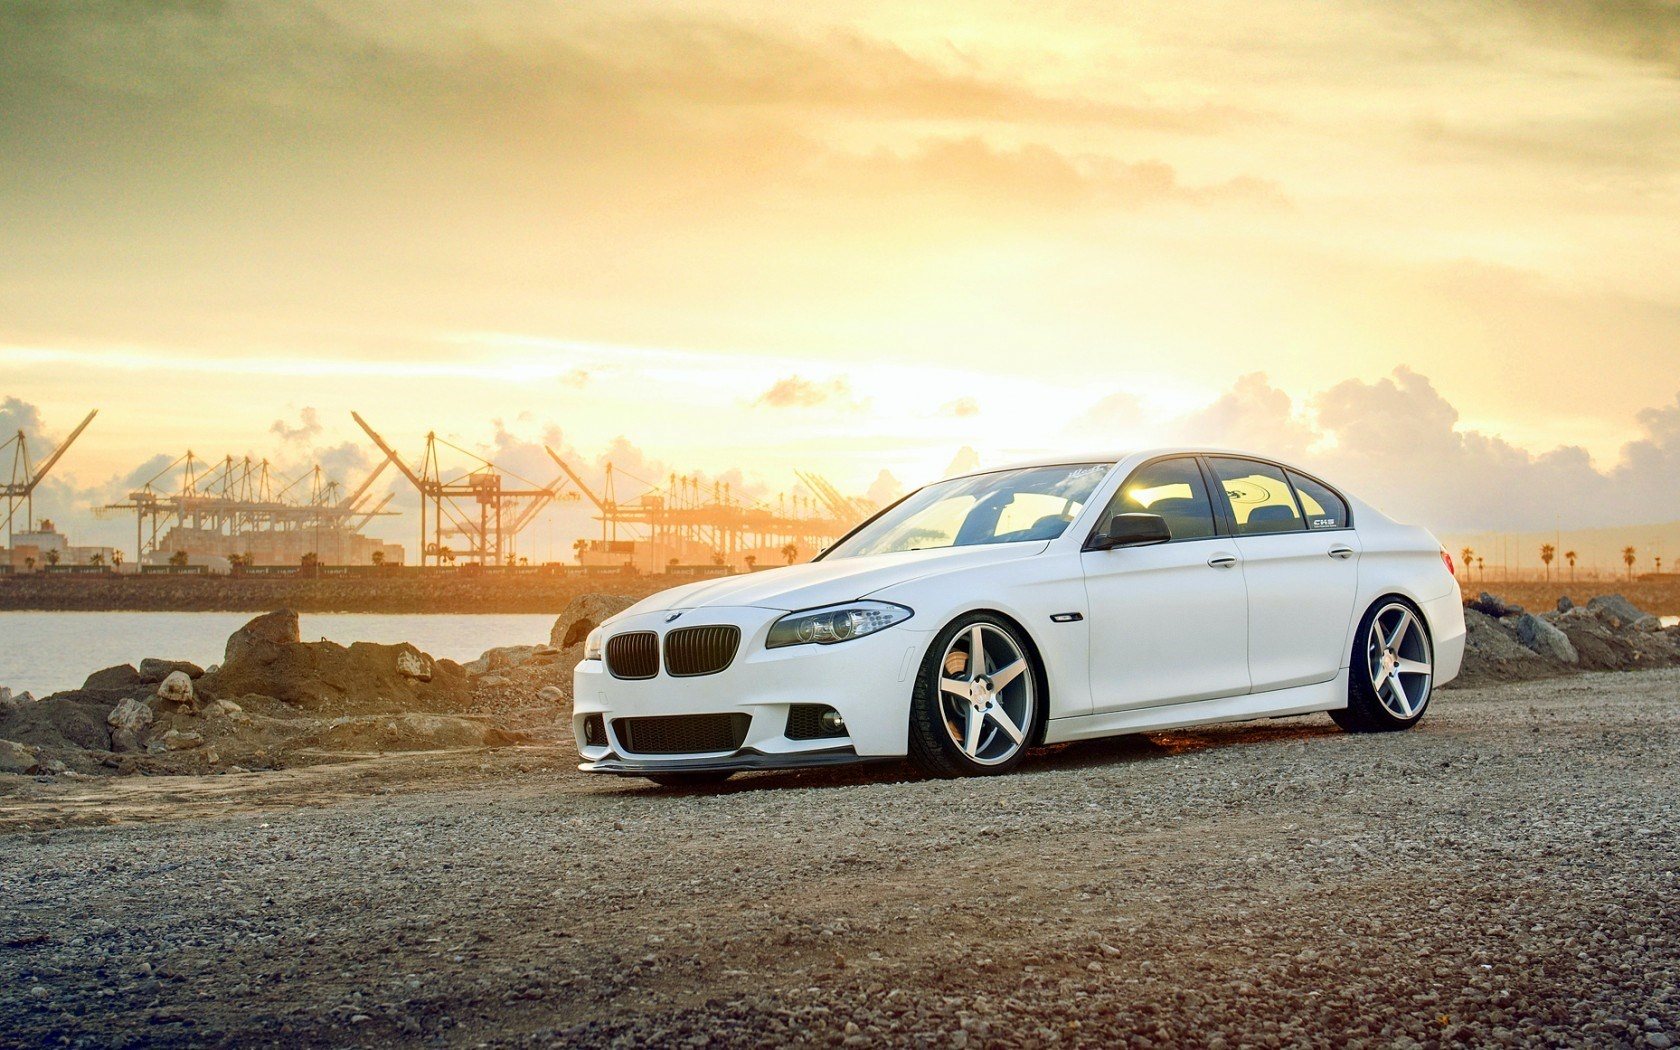 Bmw F10 550i Car Tuning Parking Road Wallpapers 1680x1050 621384